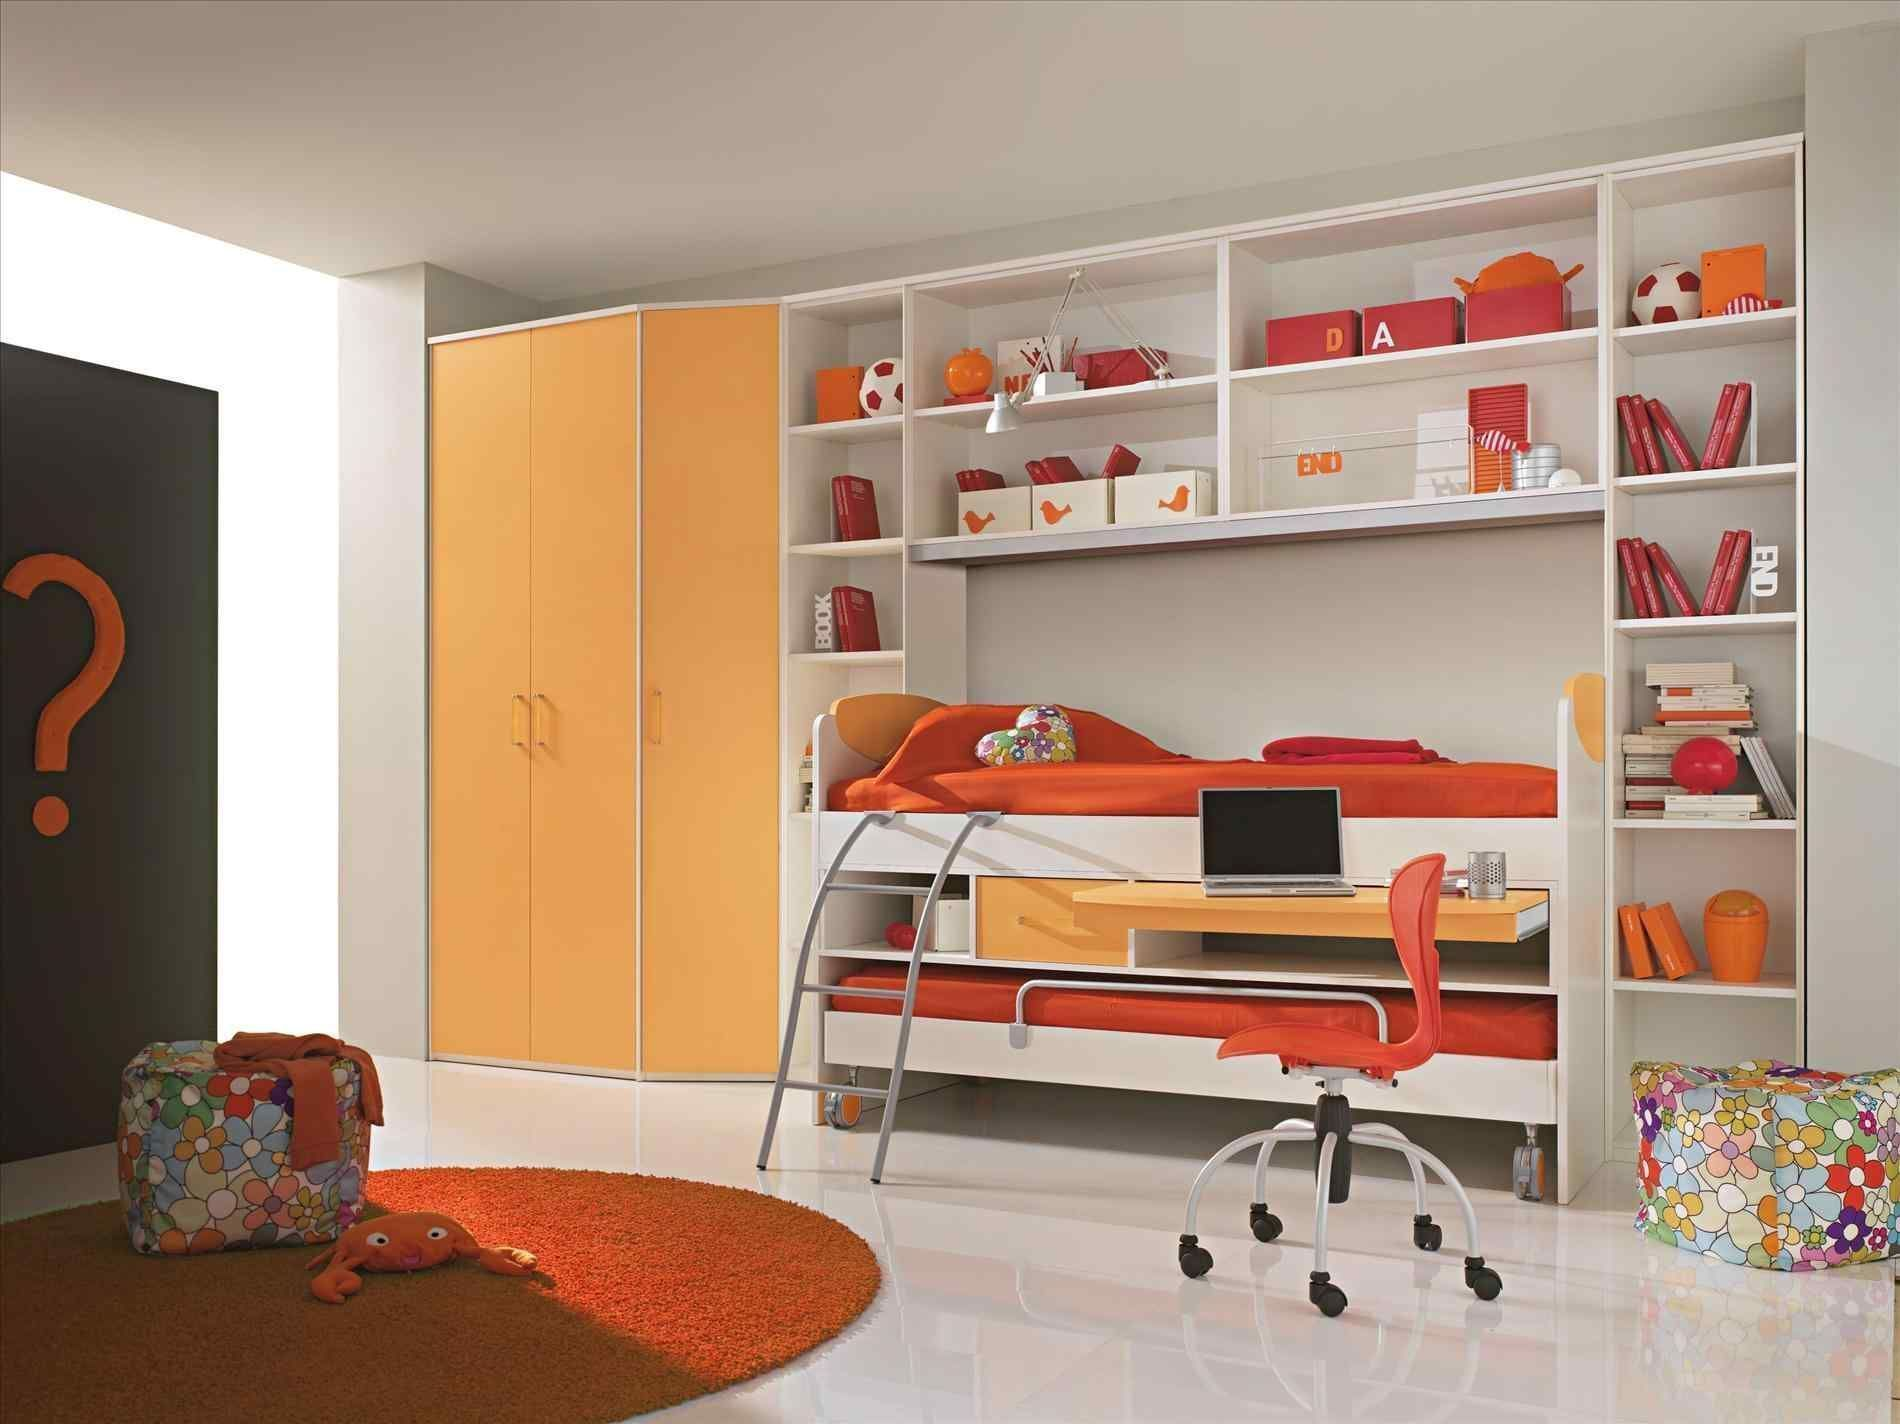 Cool loft bed ideas  Cool Bunk Bed Ideas Pictures amazing fancy designs for bedroom with